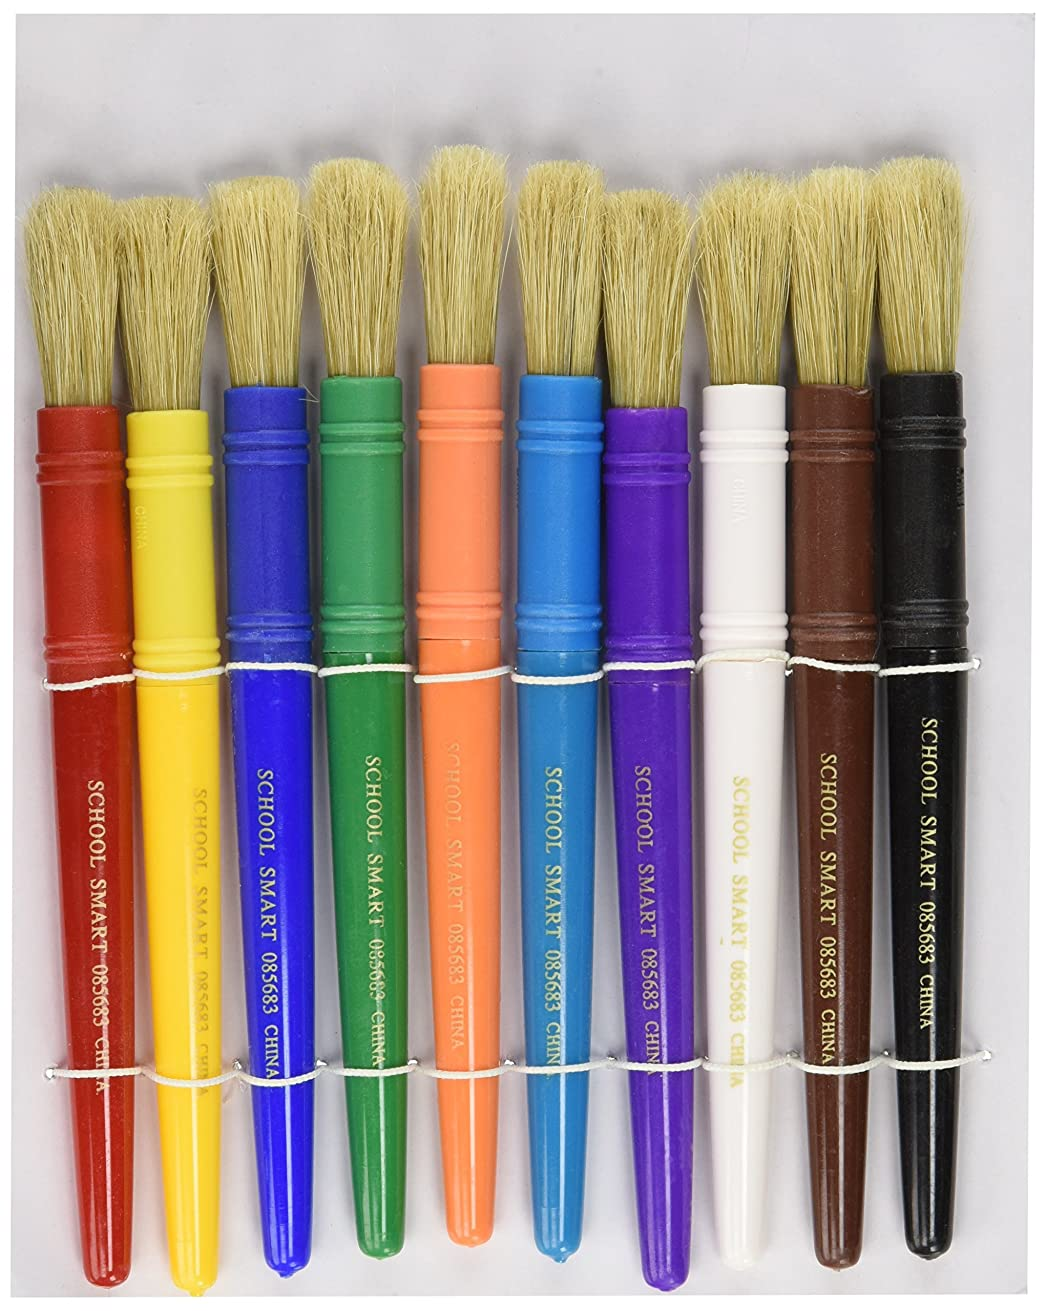 School Smart Beginner Paint Brush Set, 1/2 x 7-1/4 Inches, Assorted Colors, Set of 10